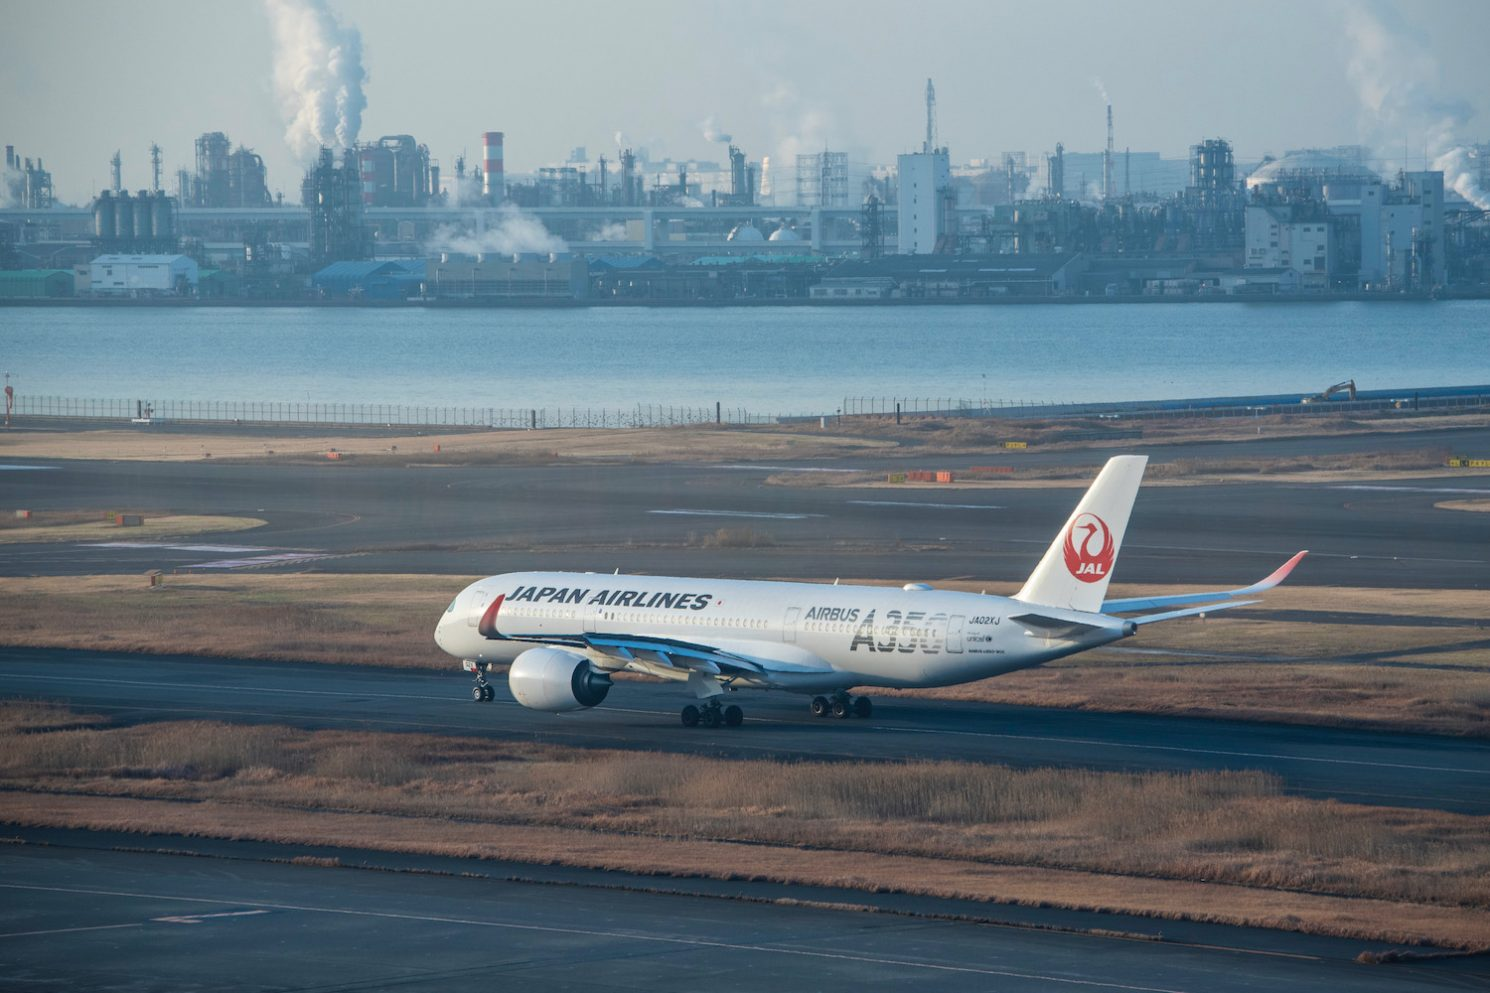 All the Ways to Haneda and Back